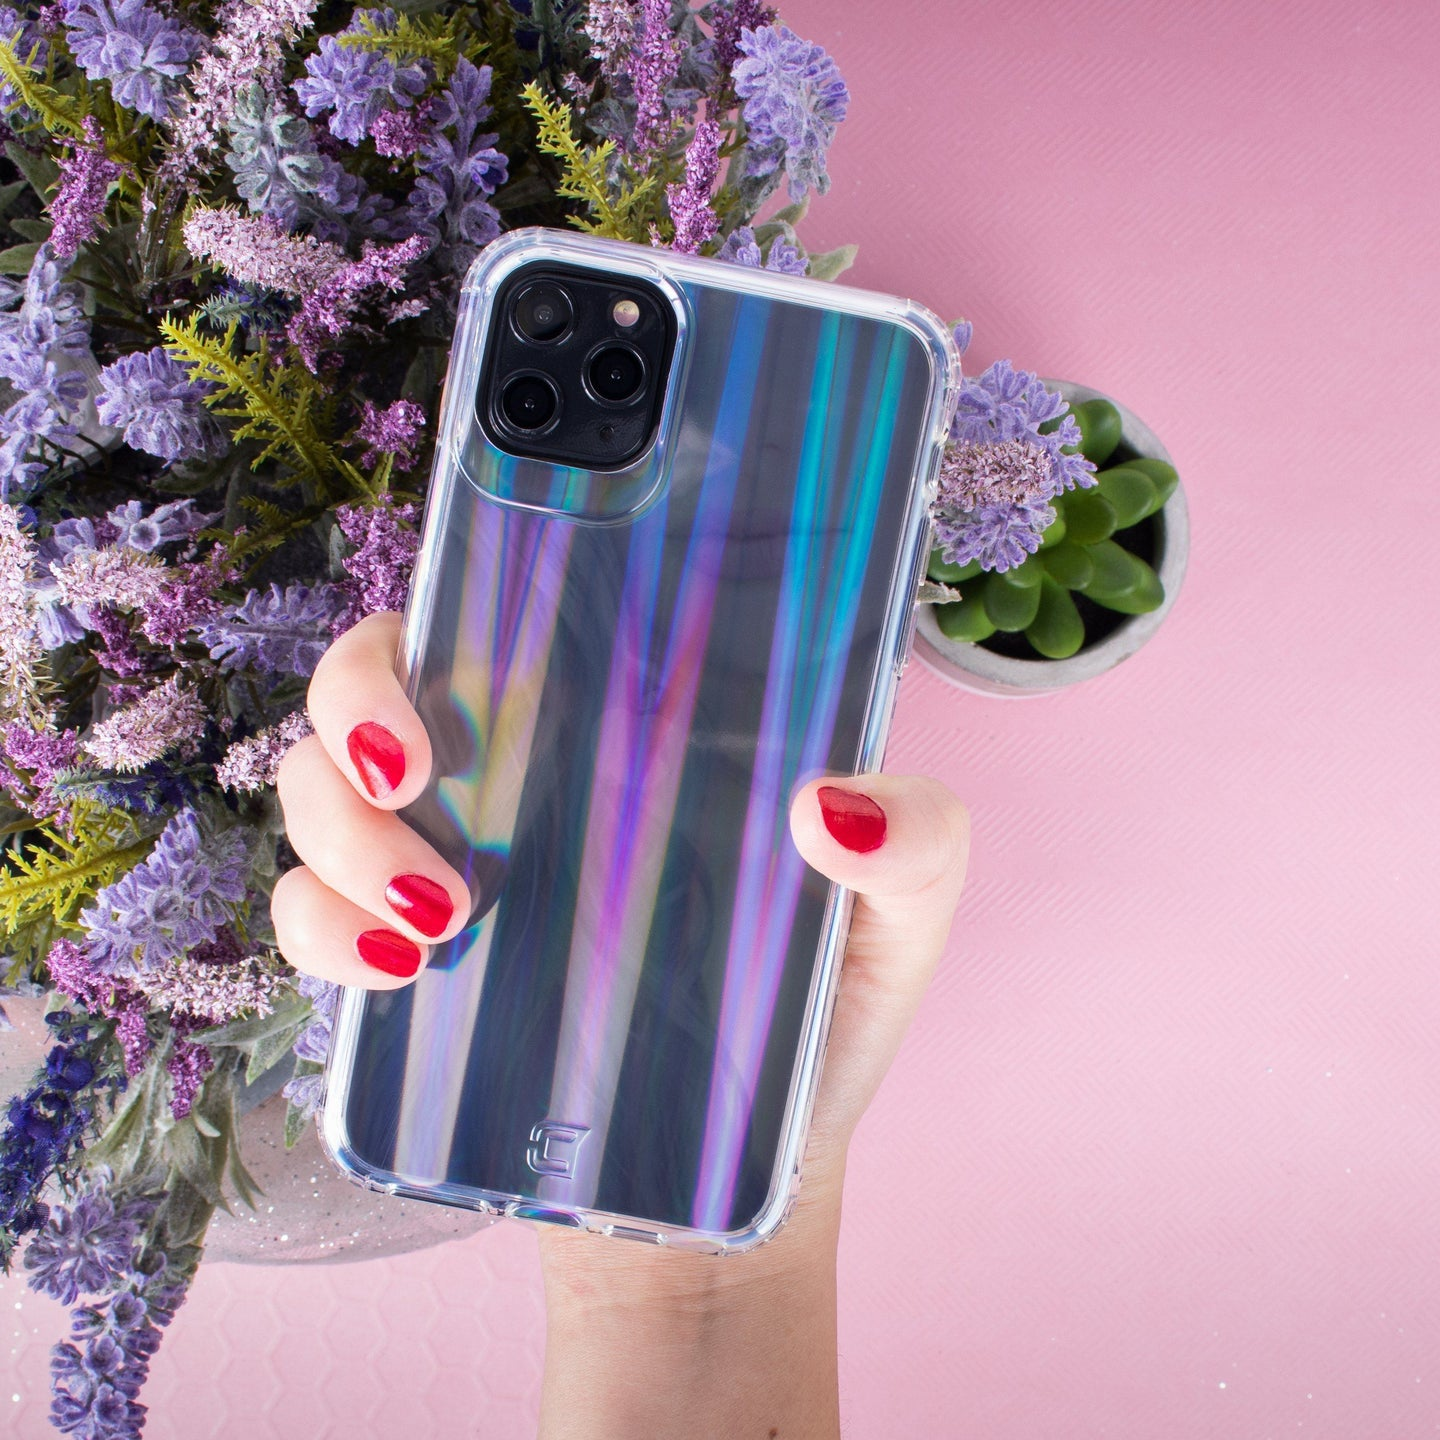 iPhone 11 - Prisma Swirled Iridescent Clear Tough Case